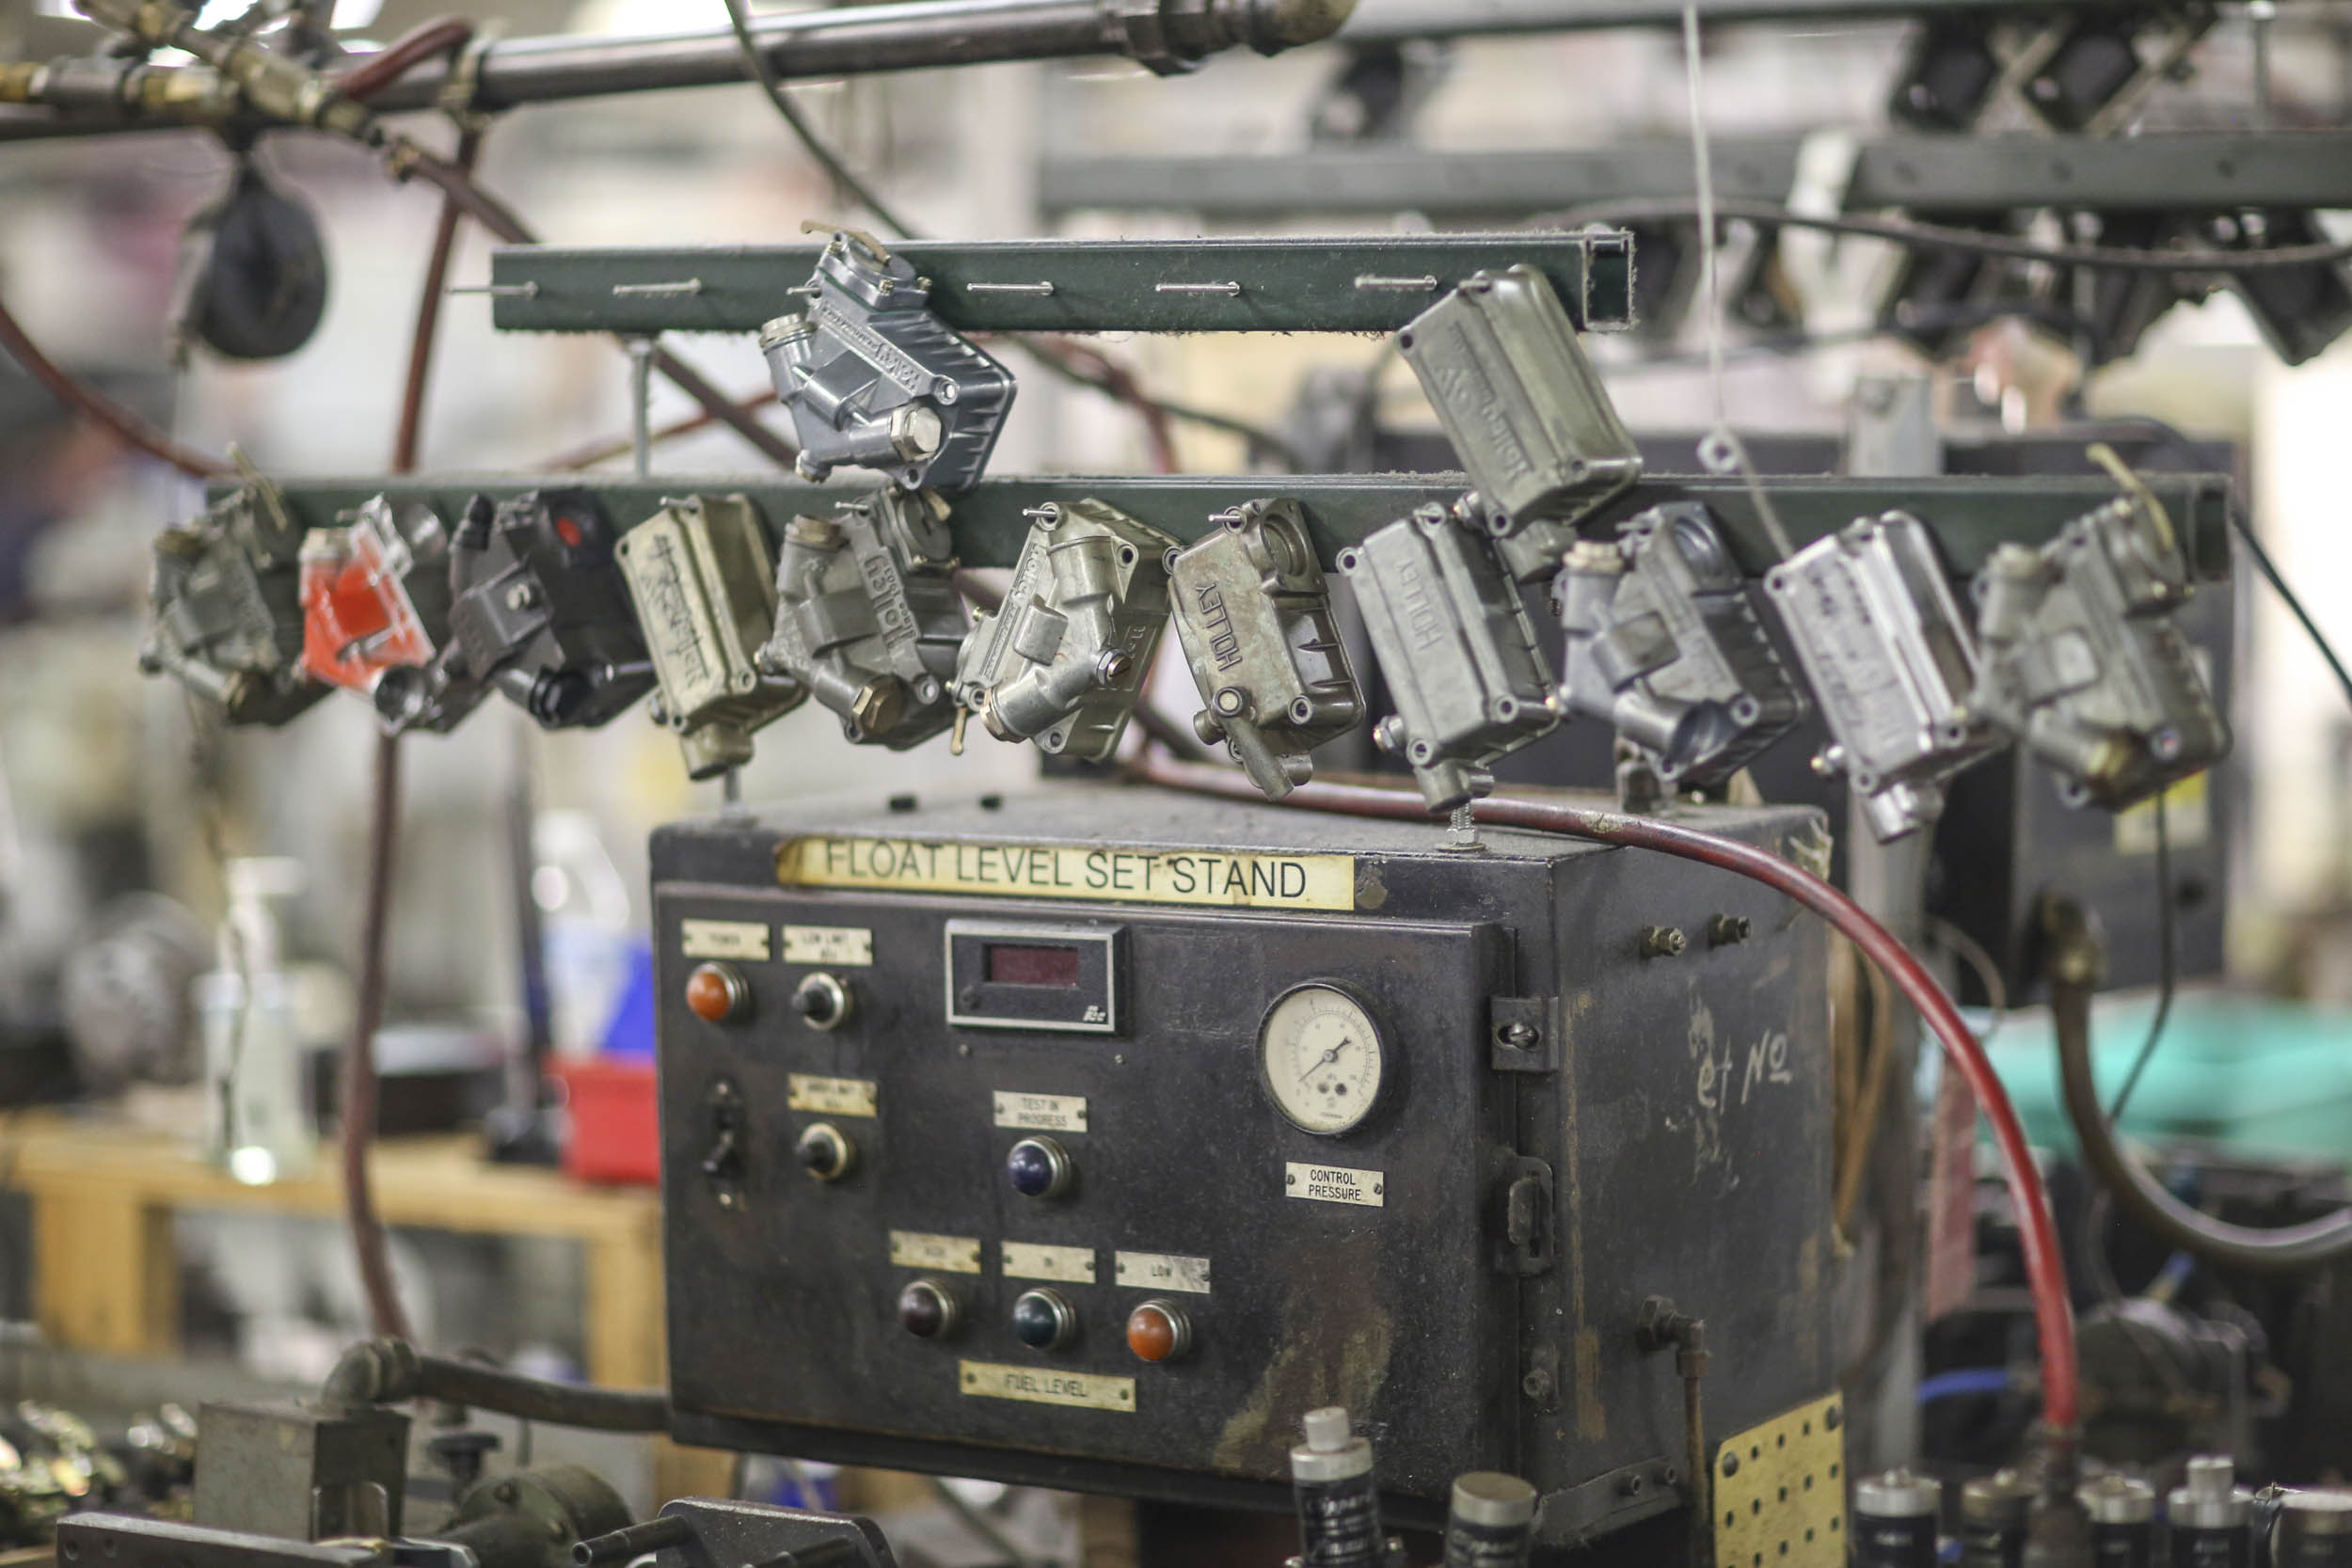 A fuel bowl from each carburetor built on the line is on hand to act as a standard for testing